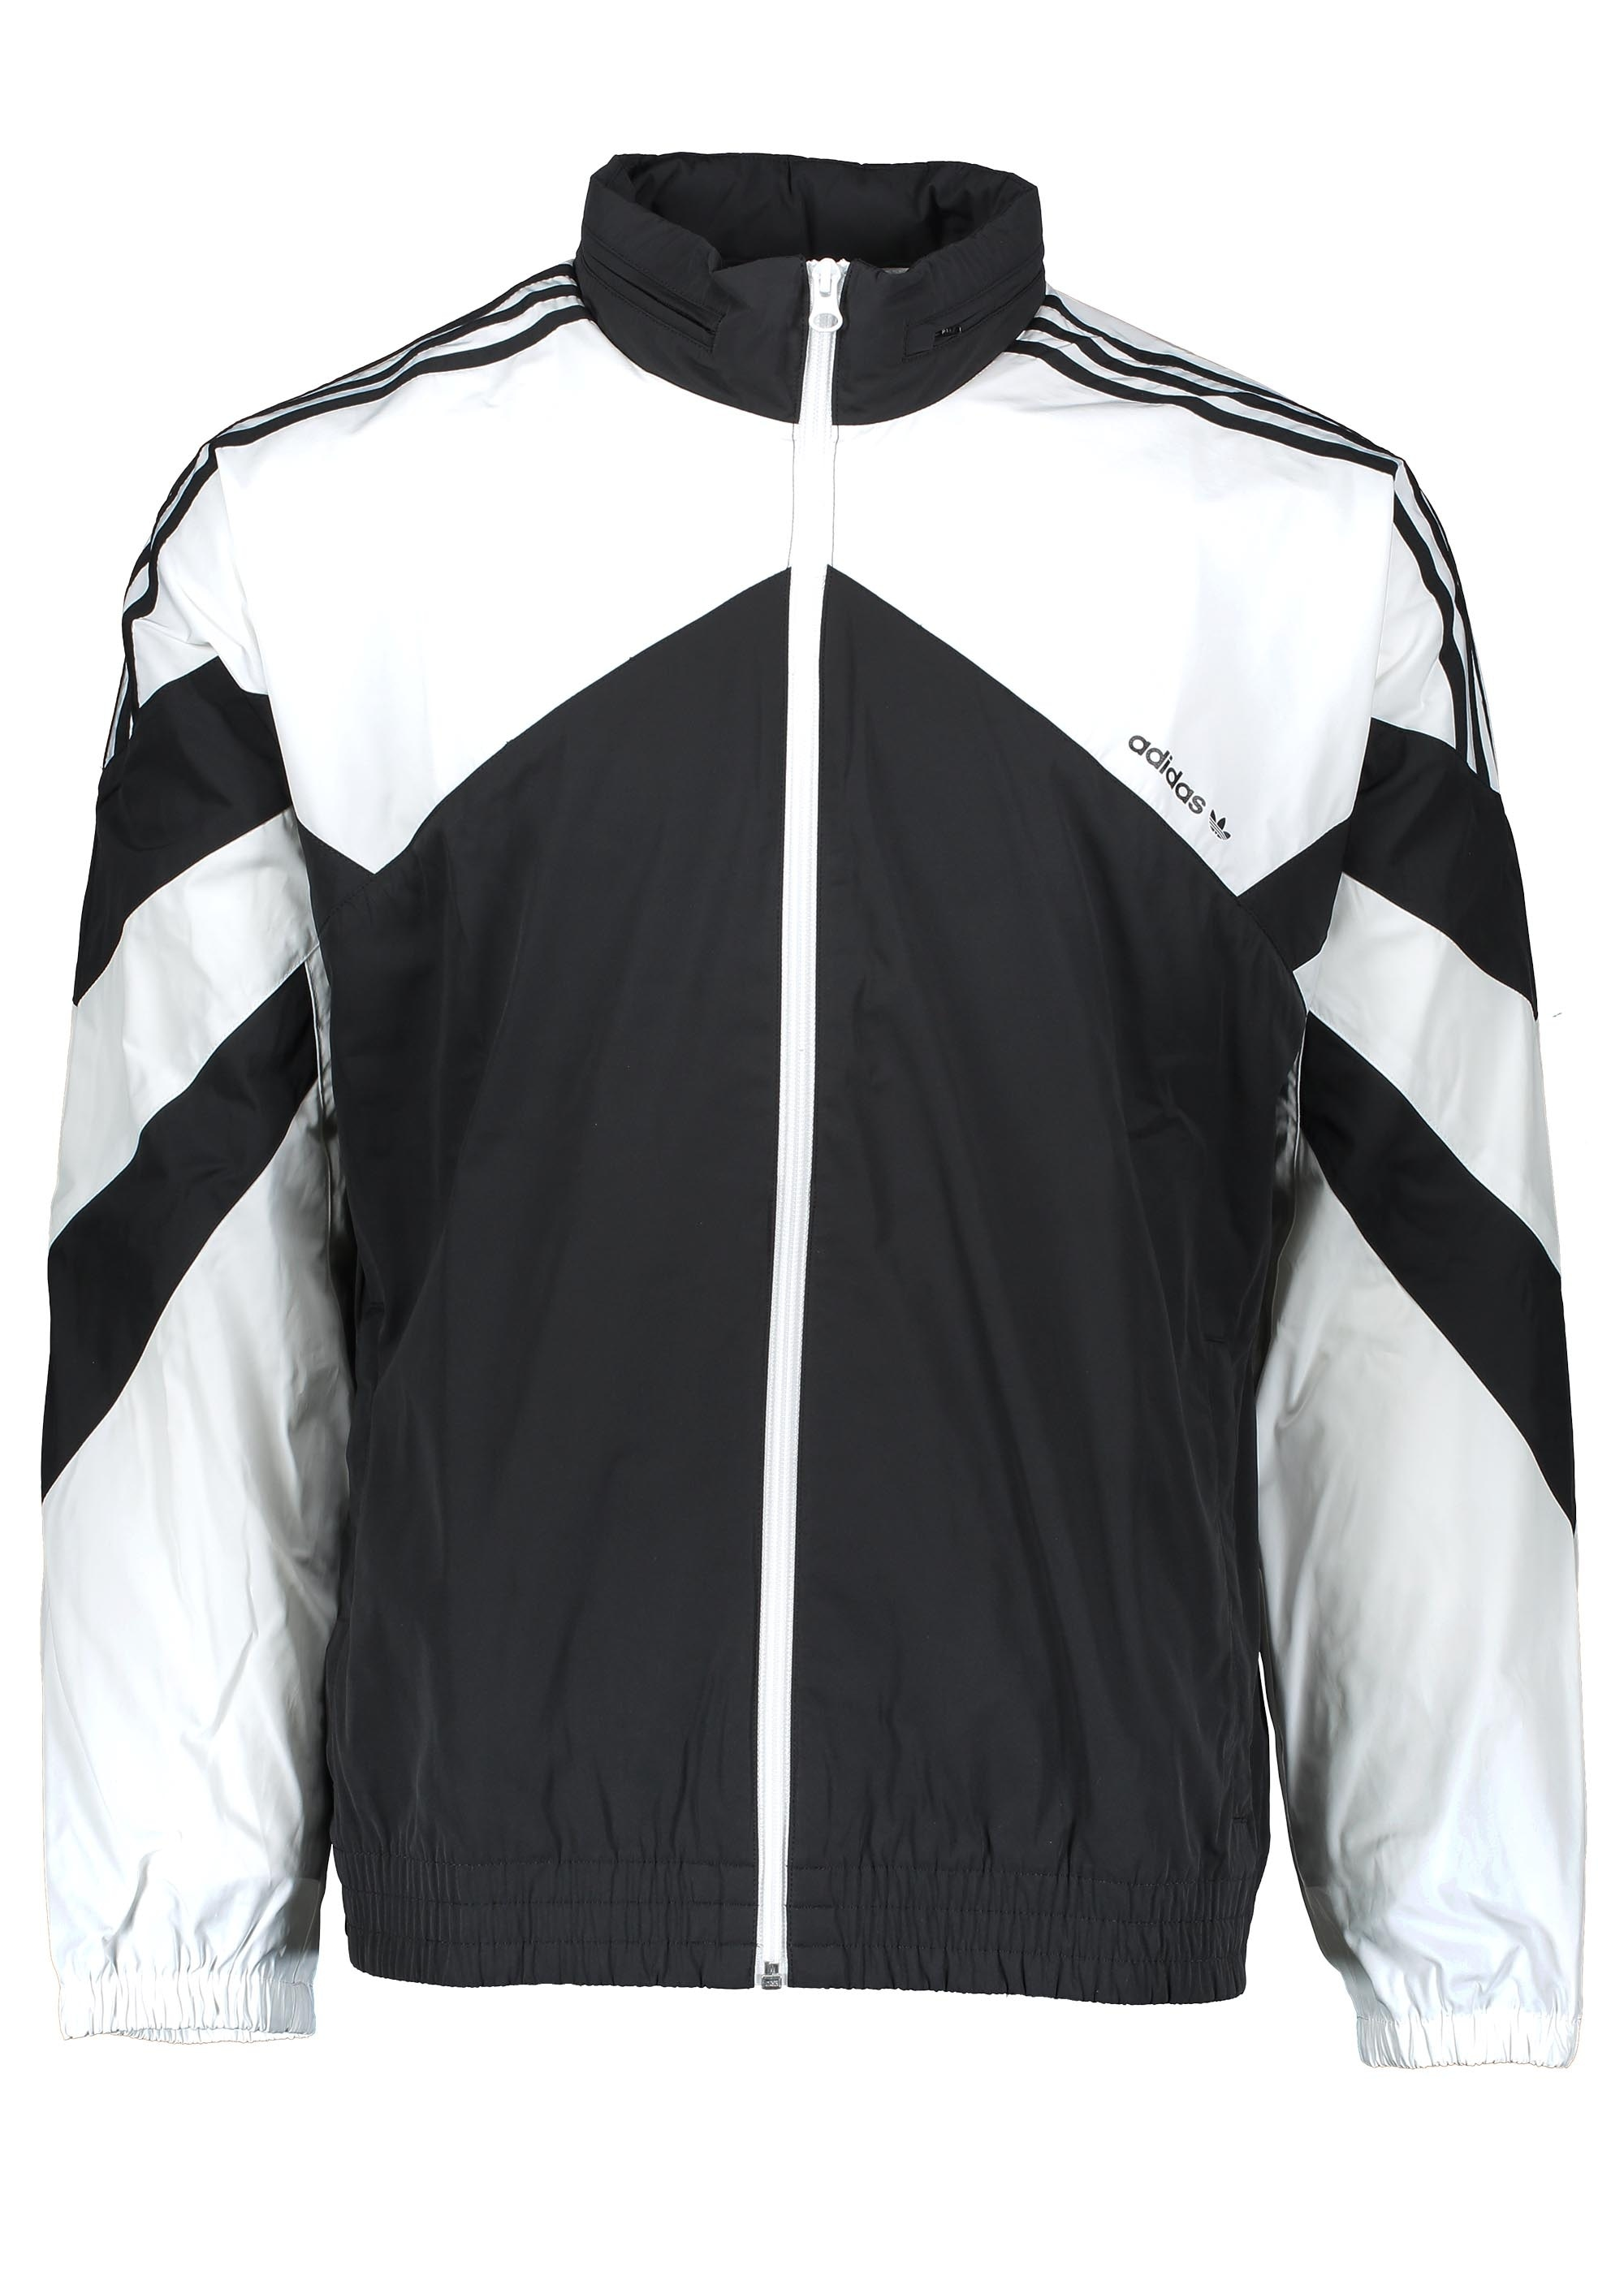 adidas Originals Apparel Palmeston Windbreaker - Black   White ... 458ad16bd